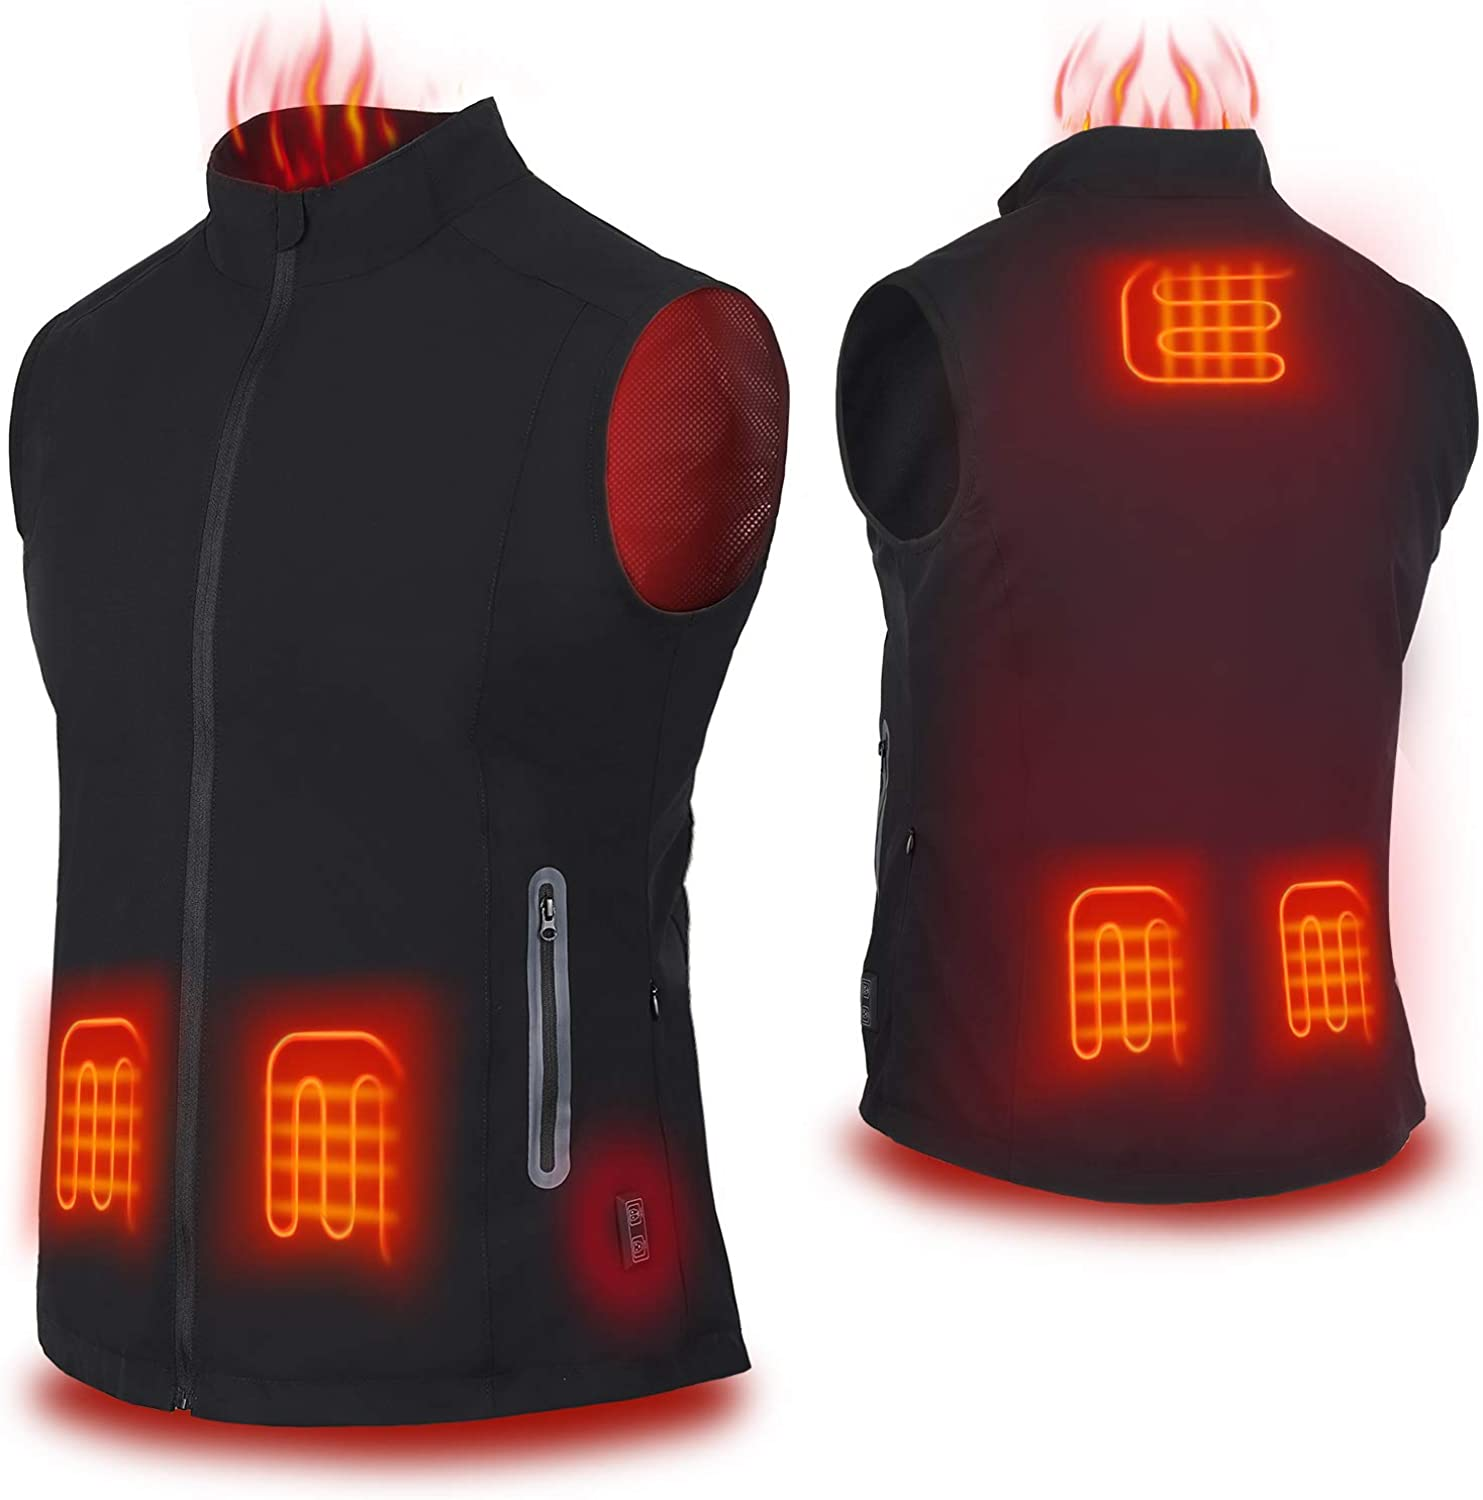 COZIHOMA Heated Vest USB Charging Dual Controls 2019 Upgrade Heating Vest Warm Clothing for Winter Skiing Hiking Motorcycle Travel Fishing Golf